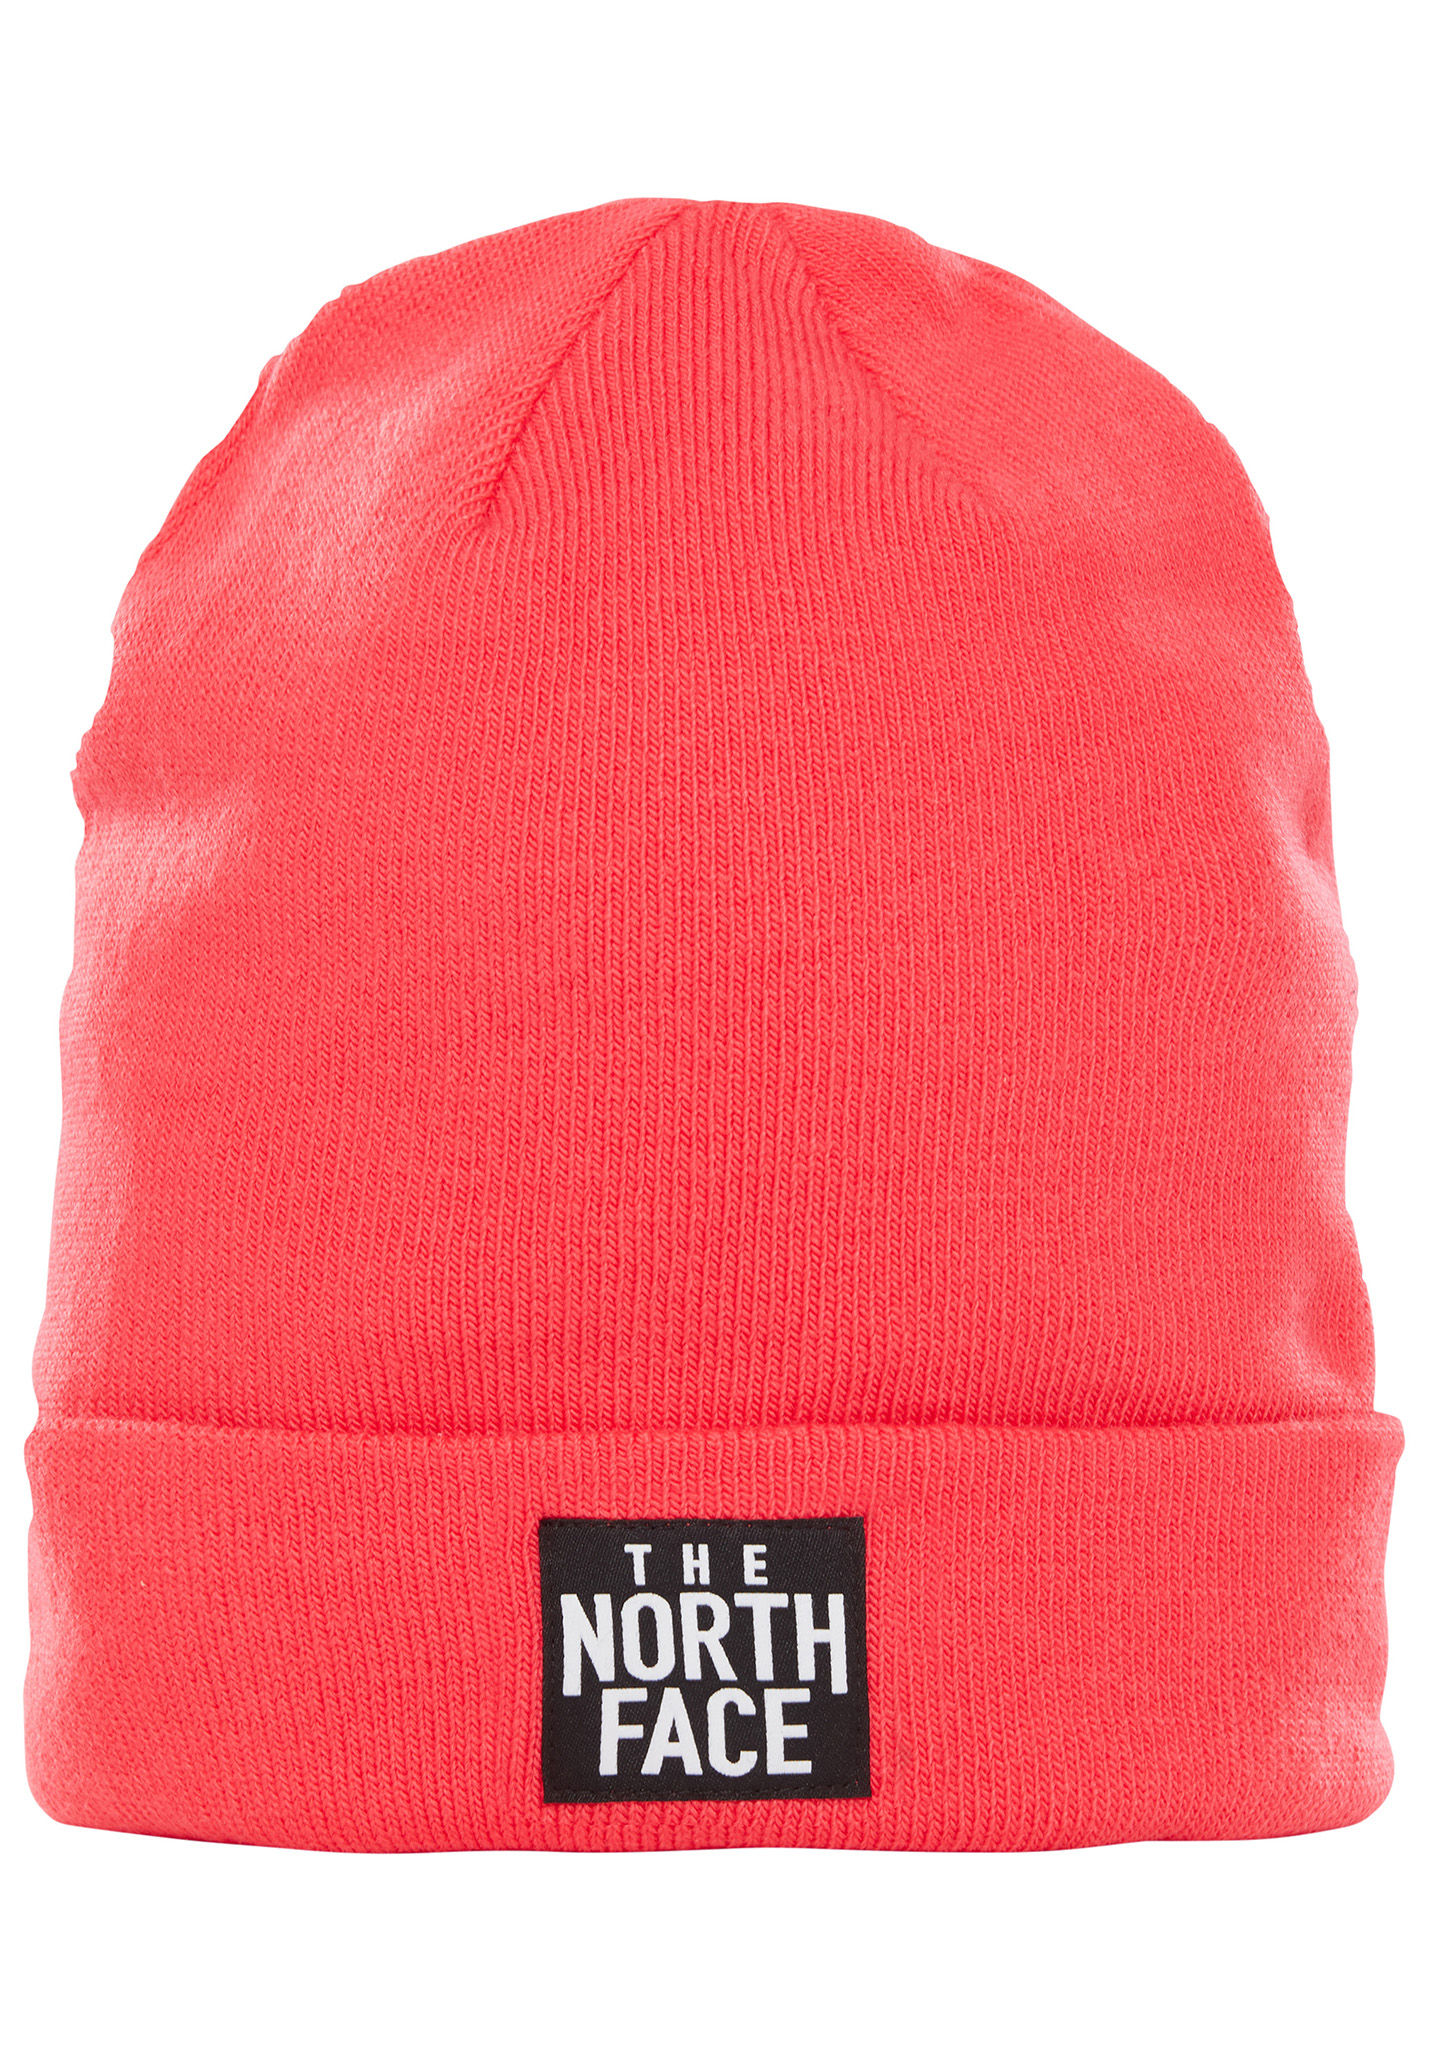 THE NORTH FACE Dock Worker - Beanie for Women - Pink - Planet Sports ec45ddeacb